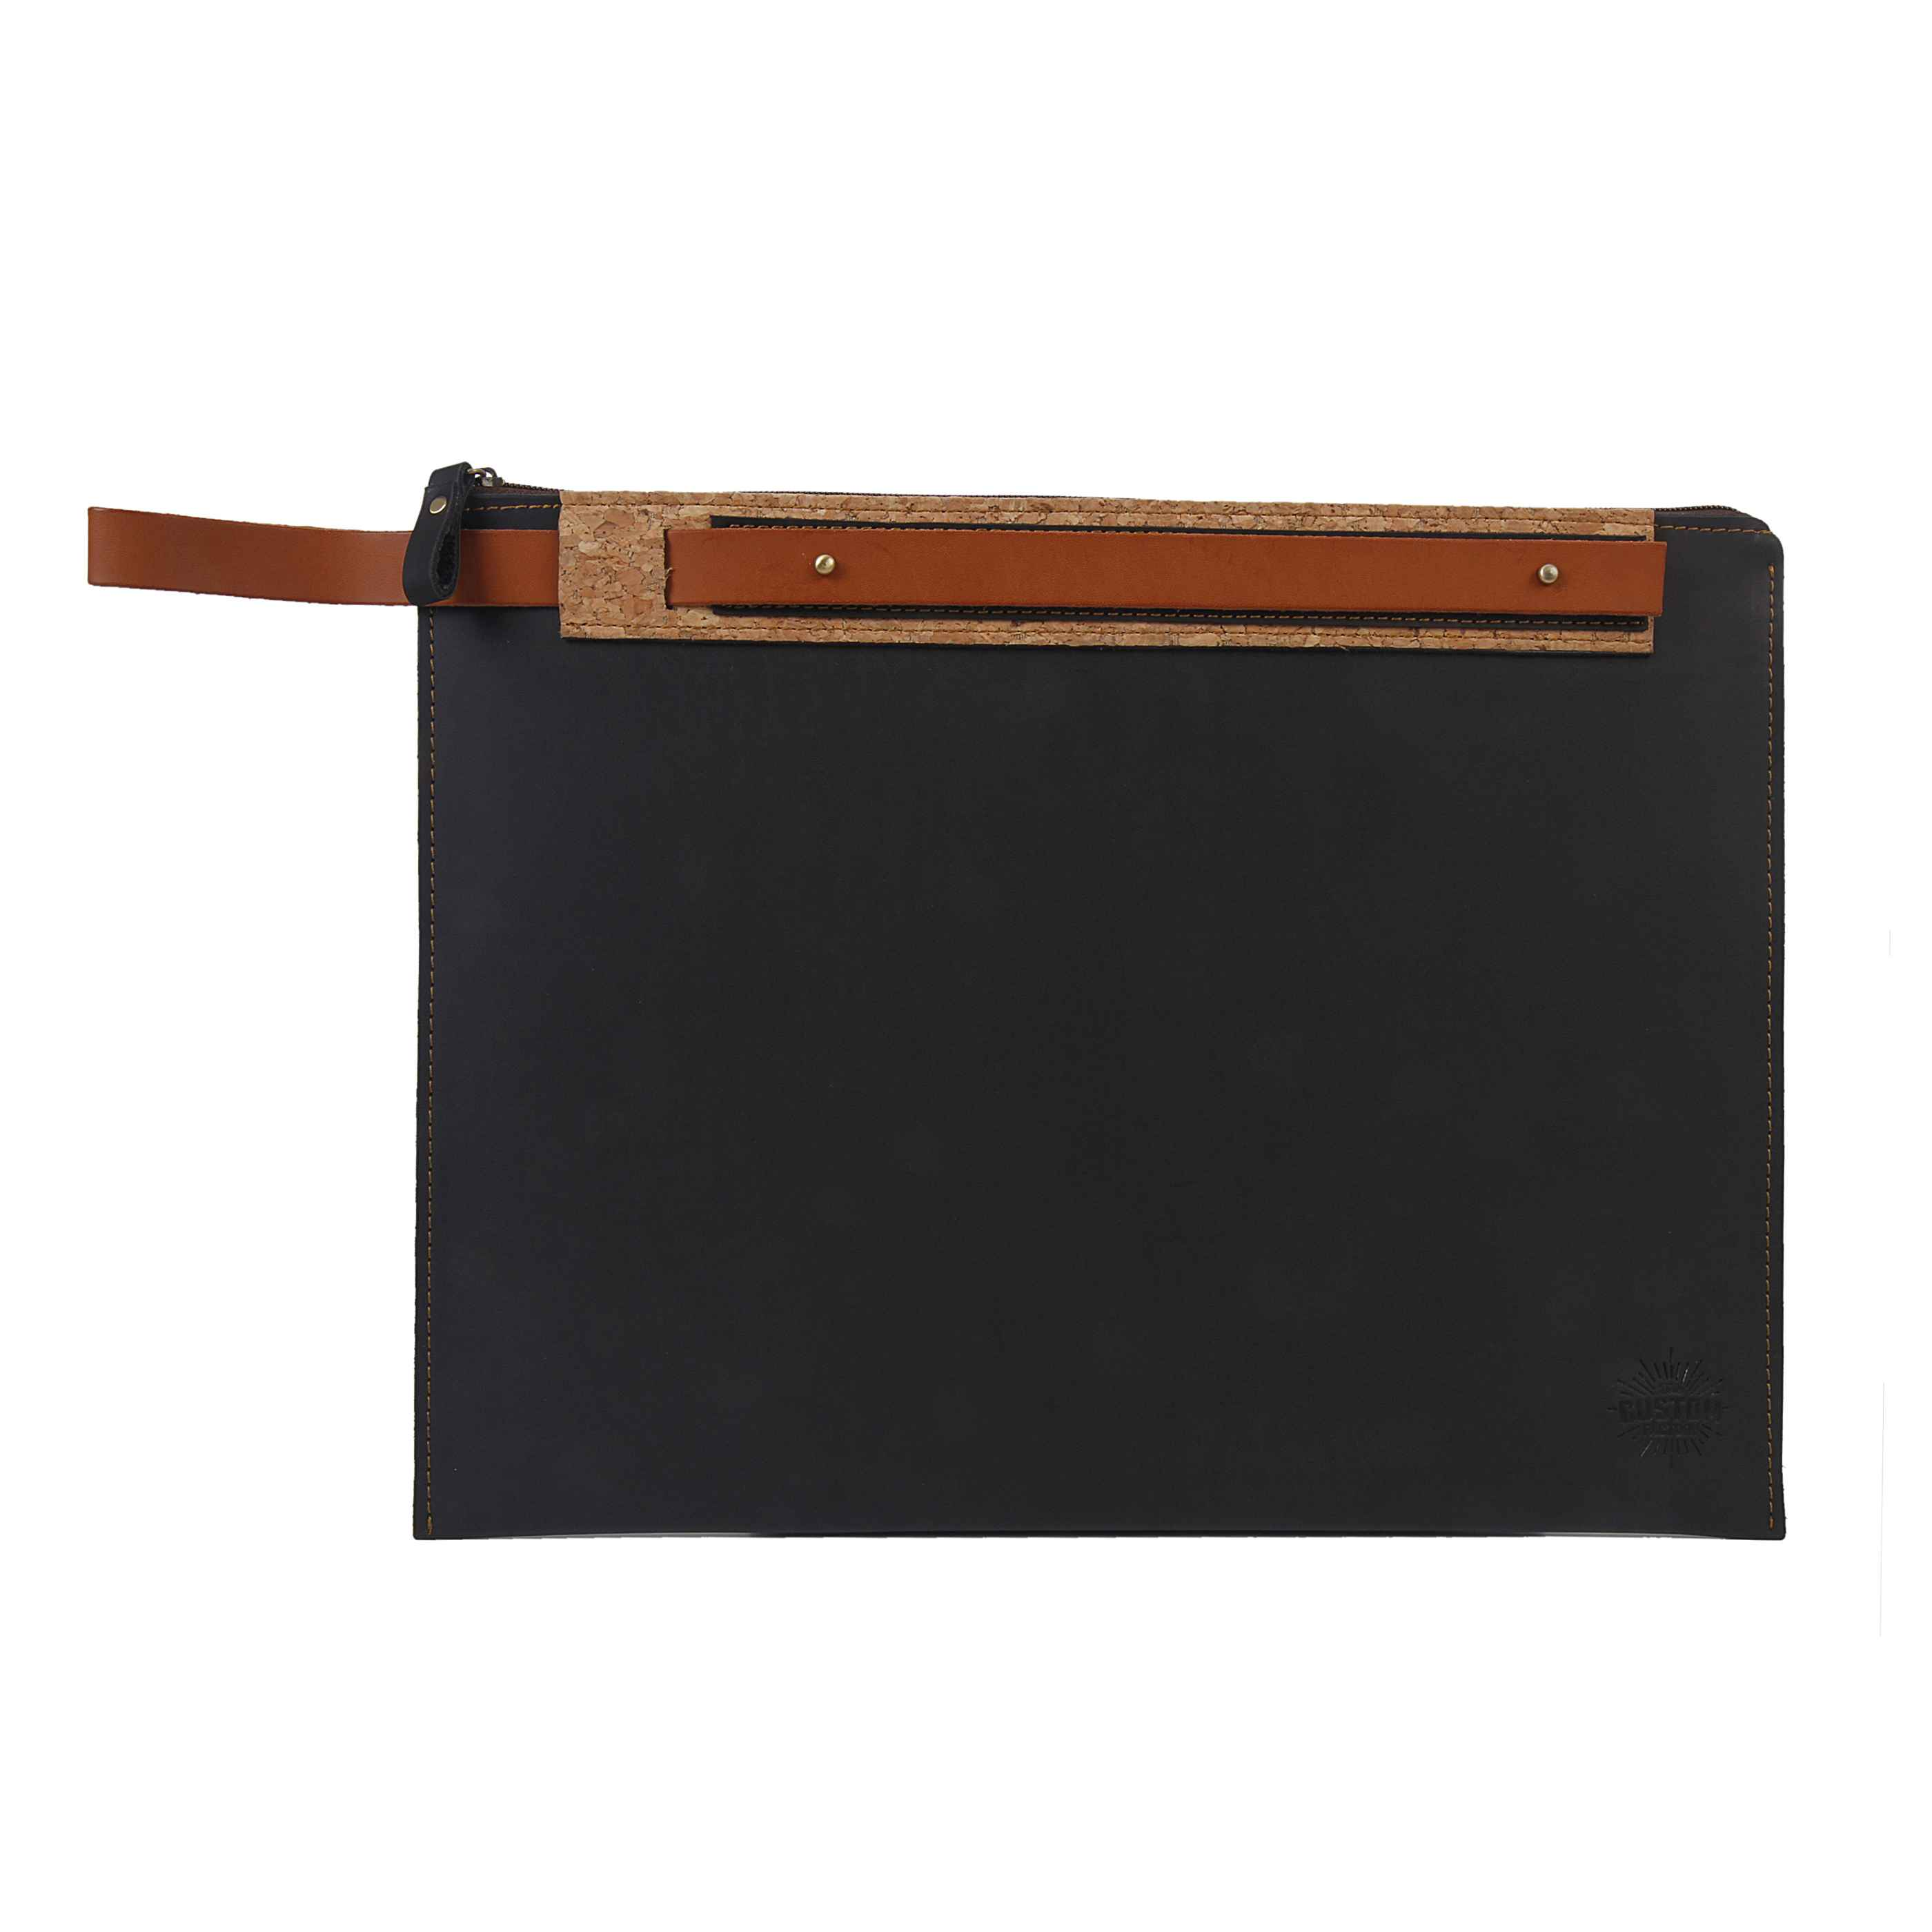 Graphite Black Ipad Pro Sleeve